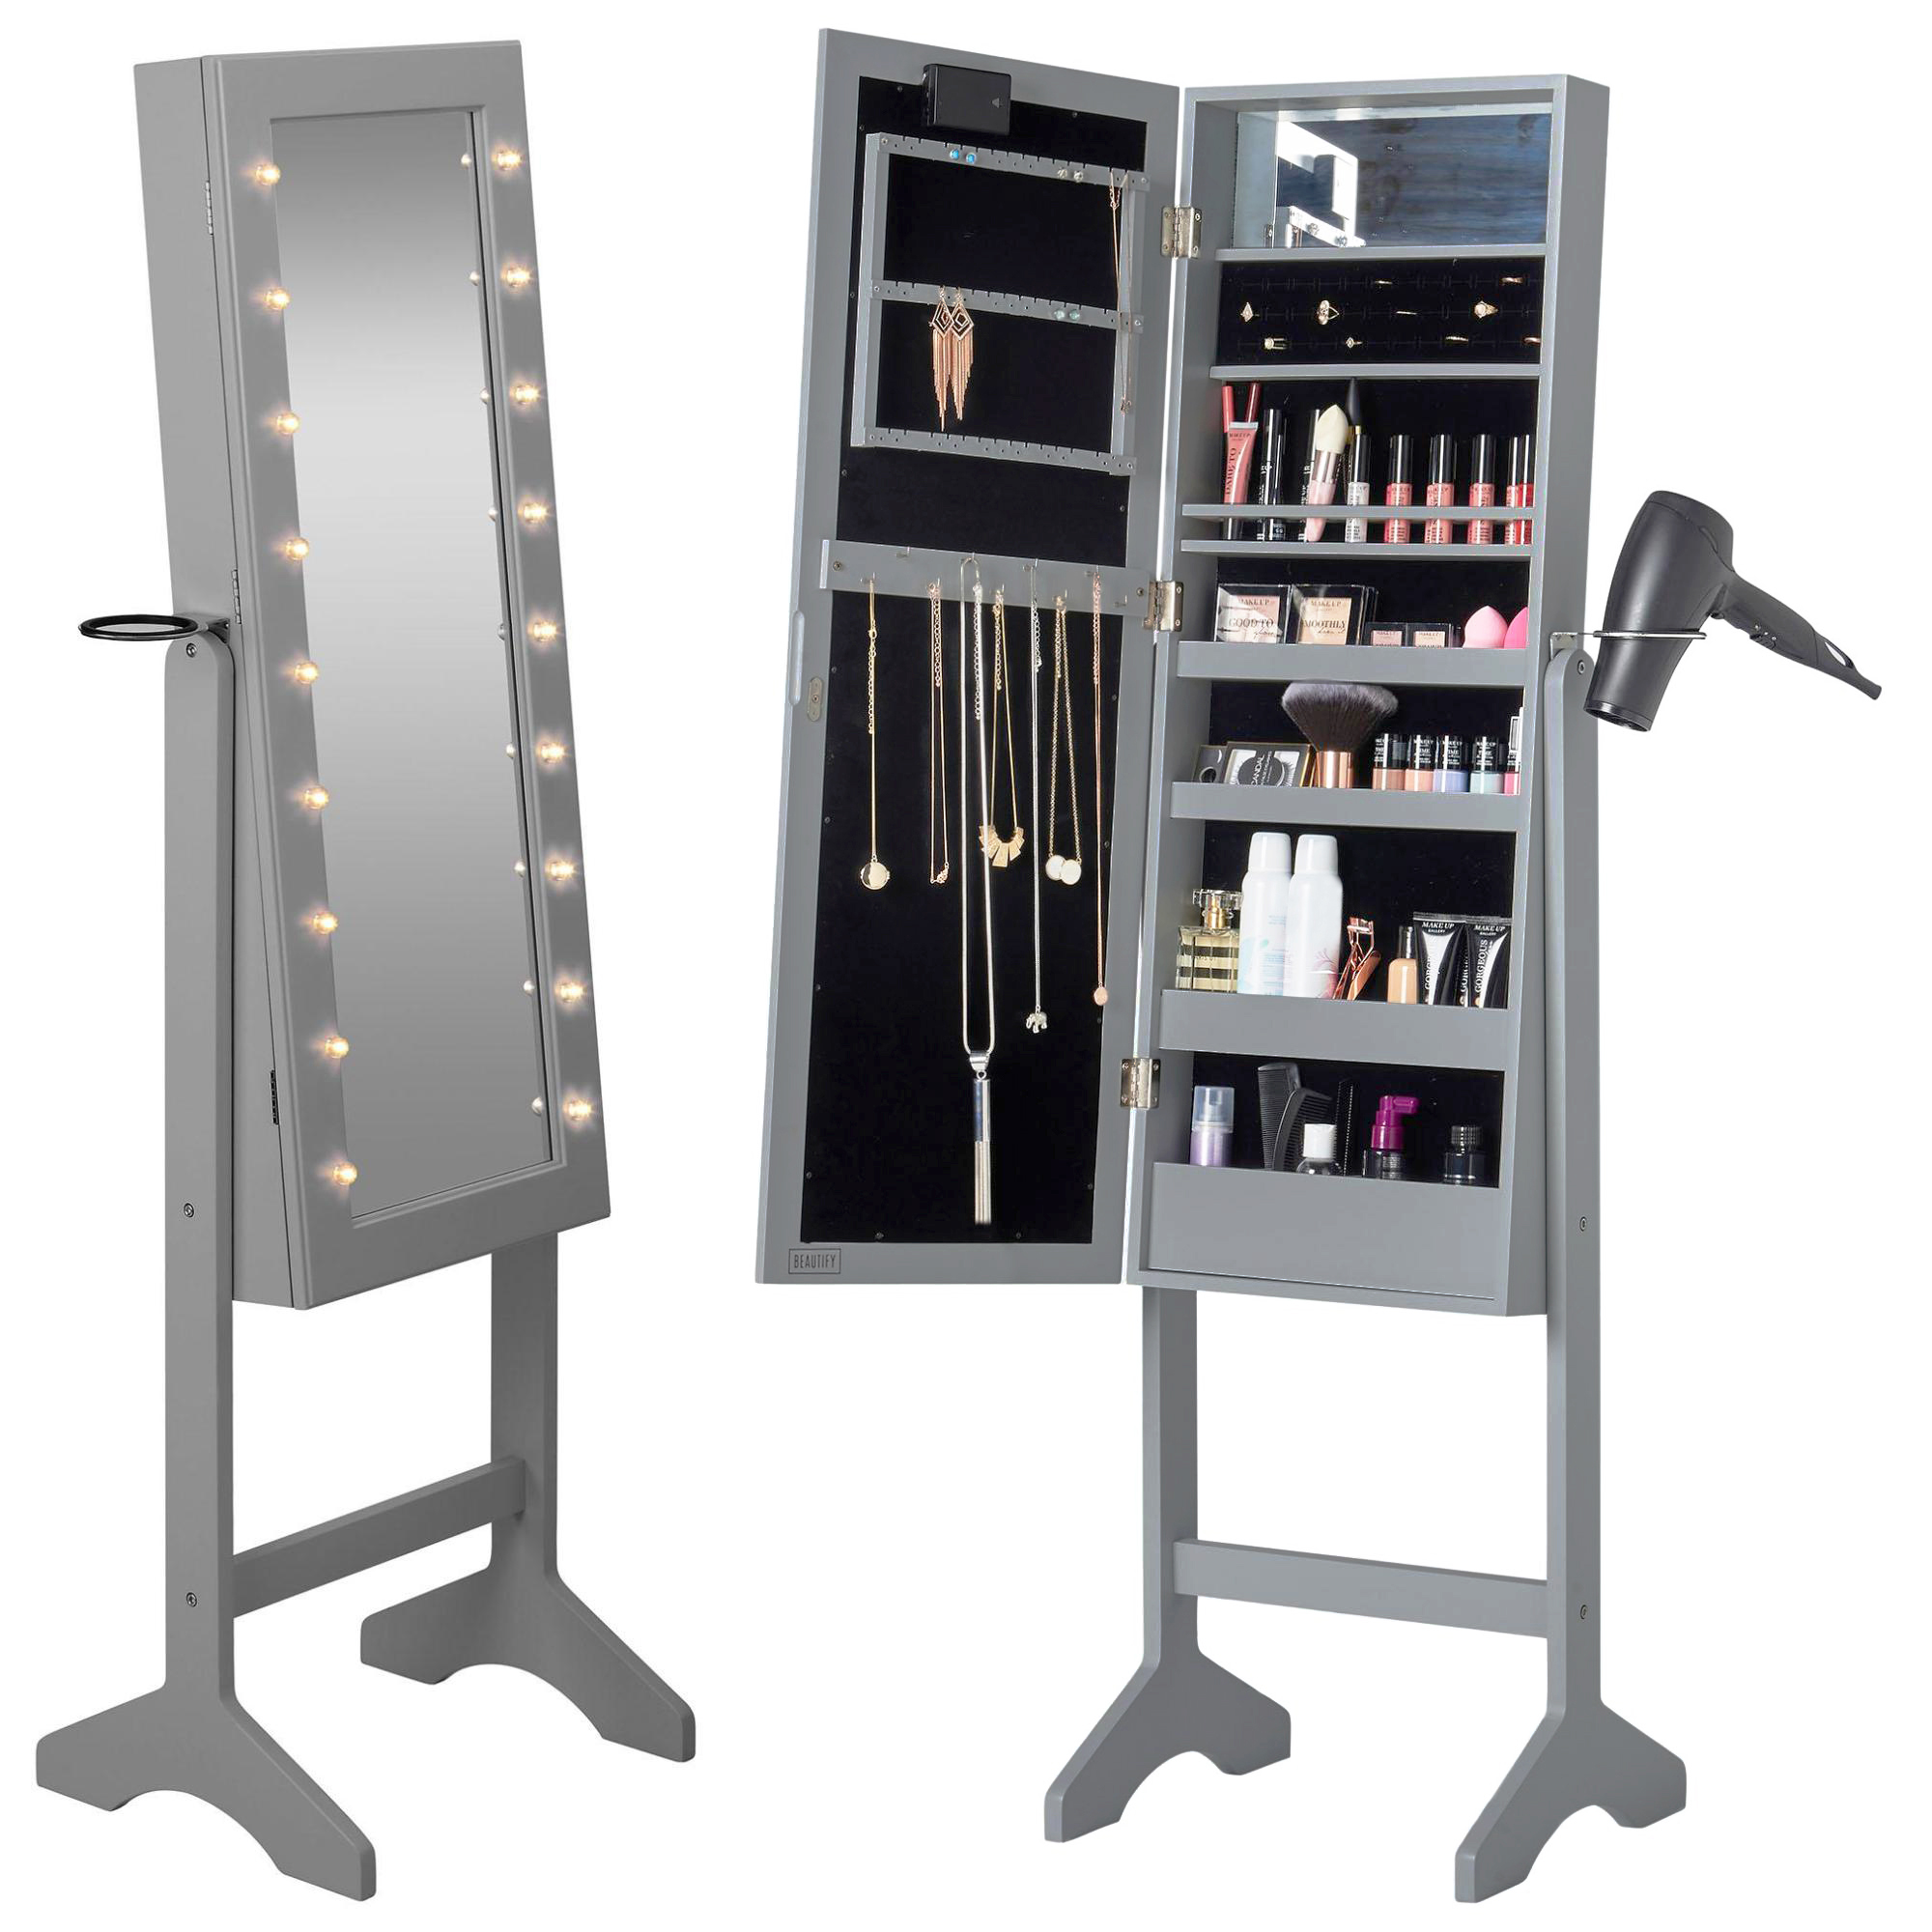 Mirror jewellery cabinet with lights cabinets matttroy for Mirror jewellery cabinet